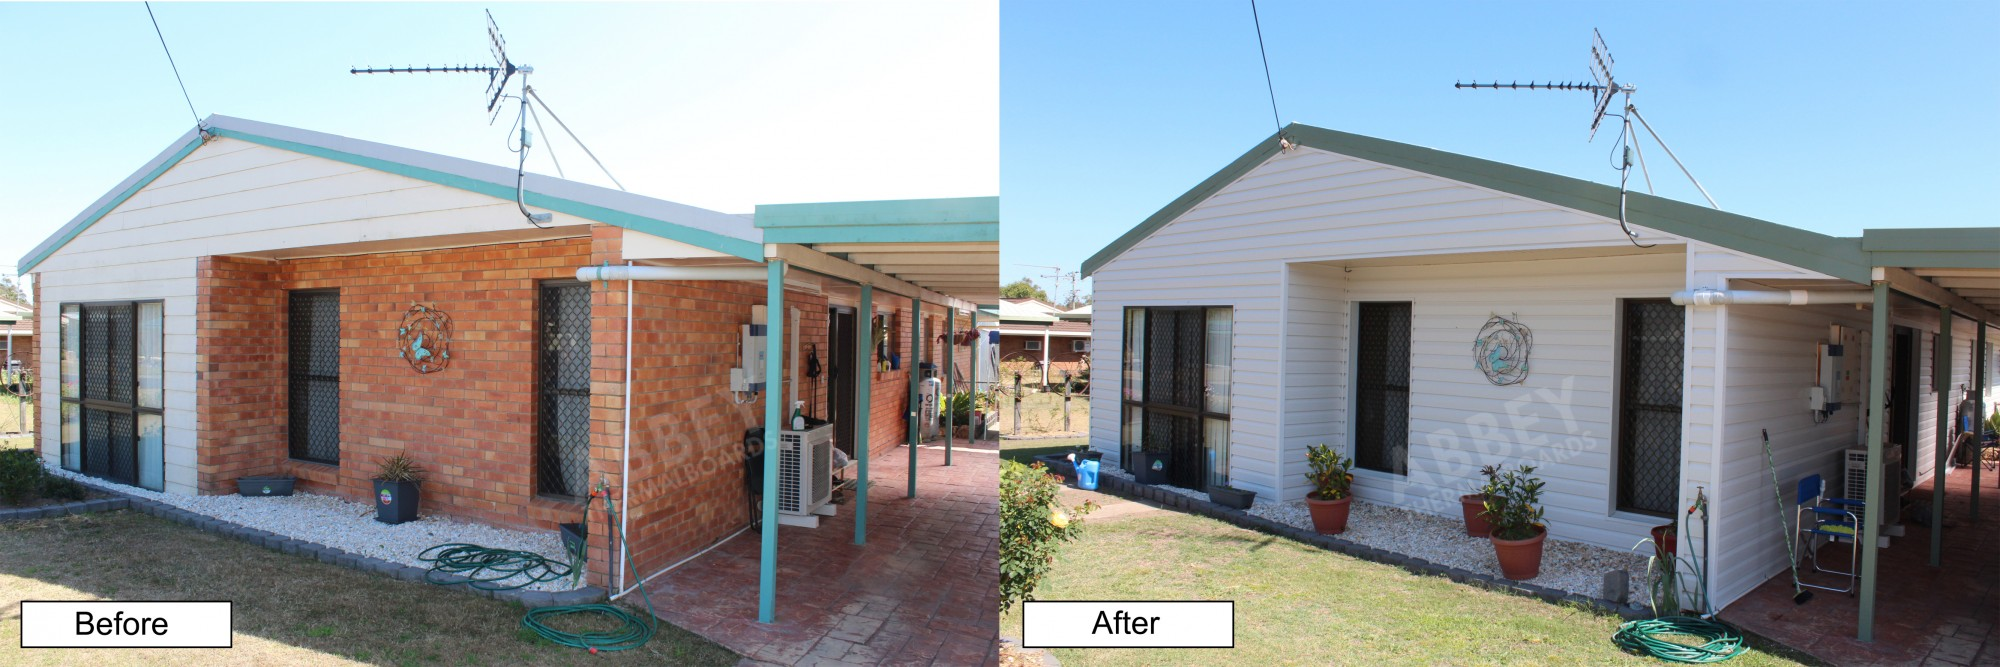 Before and after of cladding over brick applied to this large house.